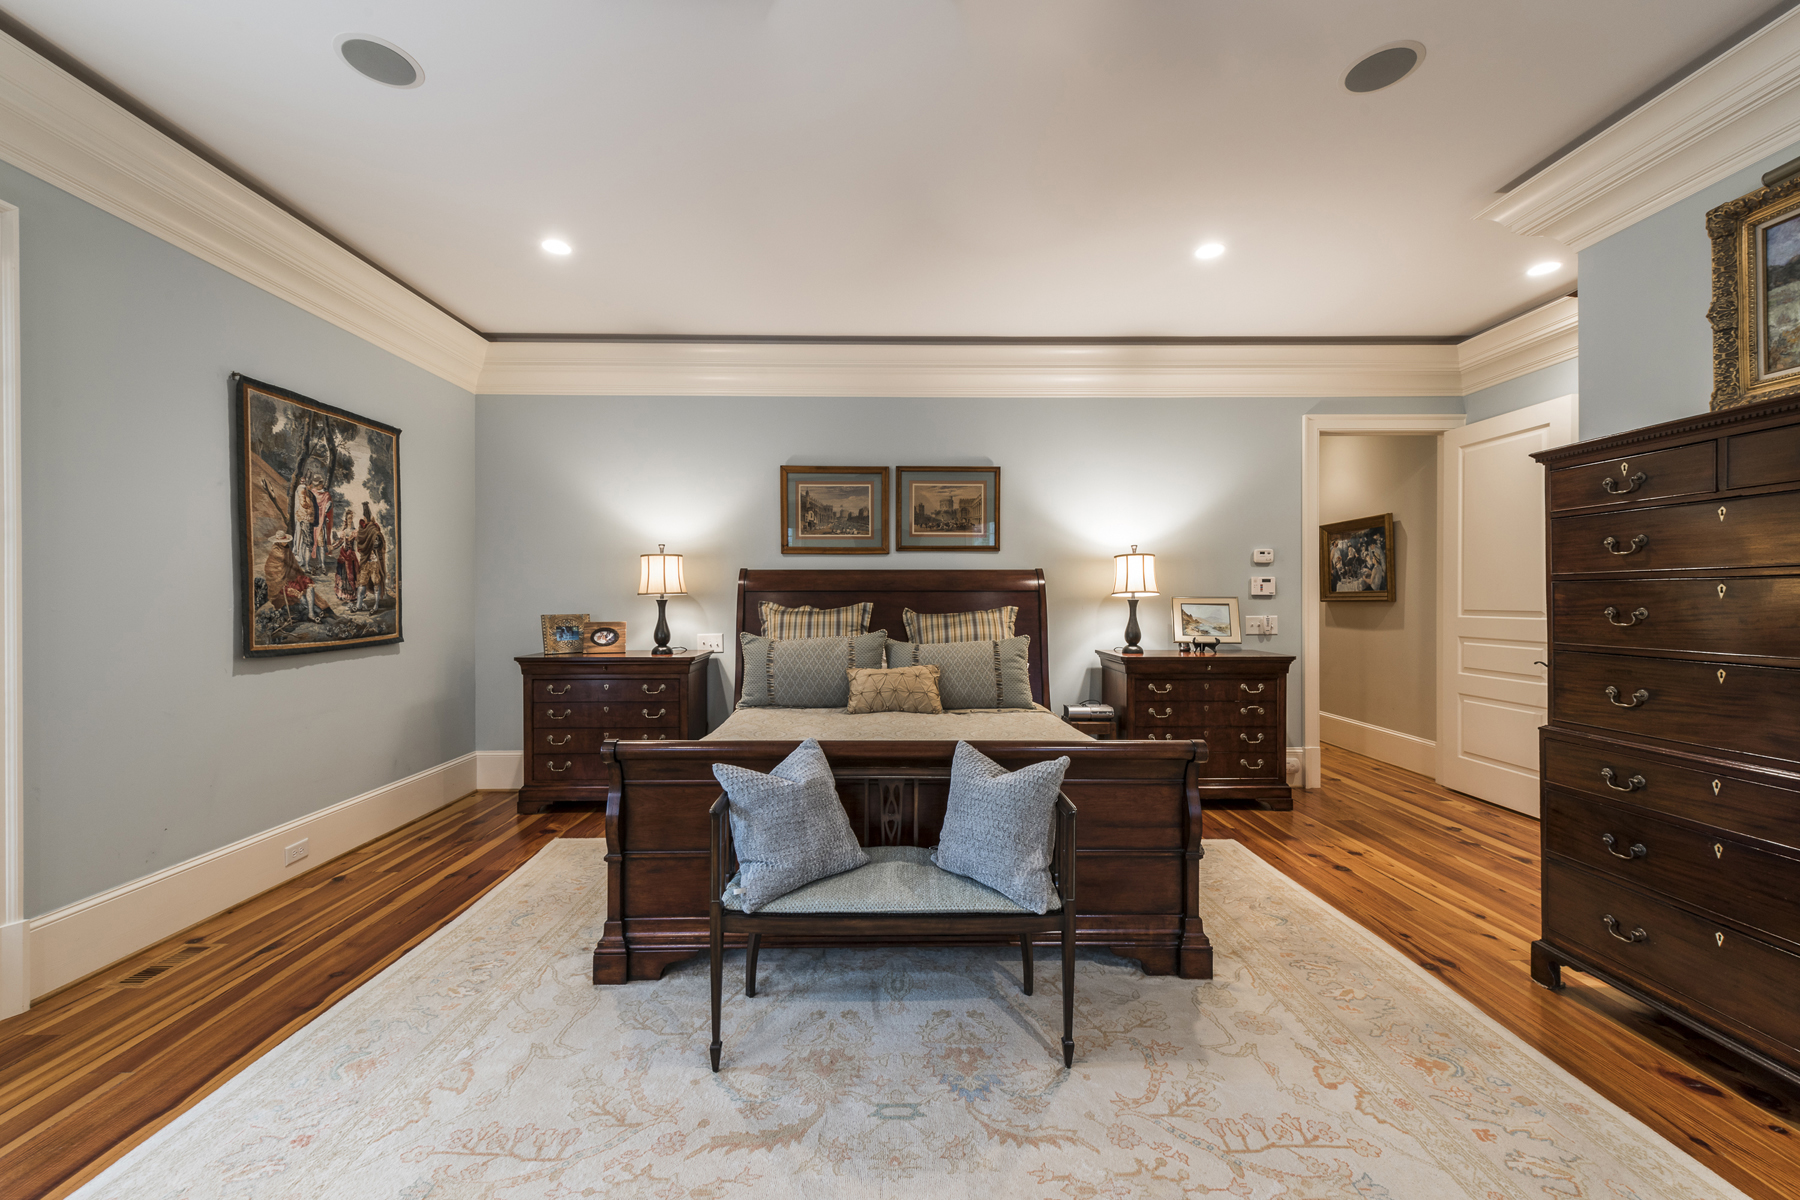 Additional photo for property listing at Beautiful Total Renovation On Quiet Cul-de-sac Street In Historic Brookhaven 4500 Club Valley Drive NE Atlanta, Georgia 30319 Hoa Kỳ